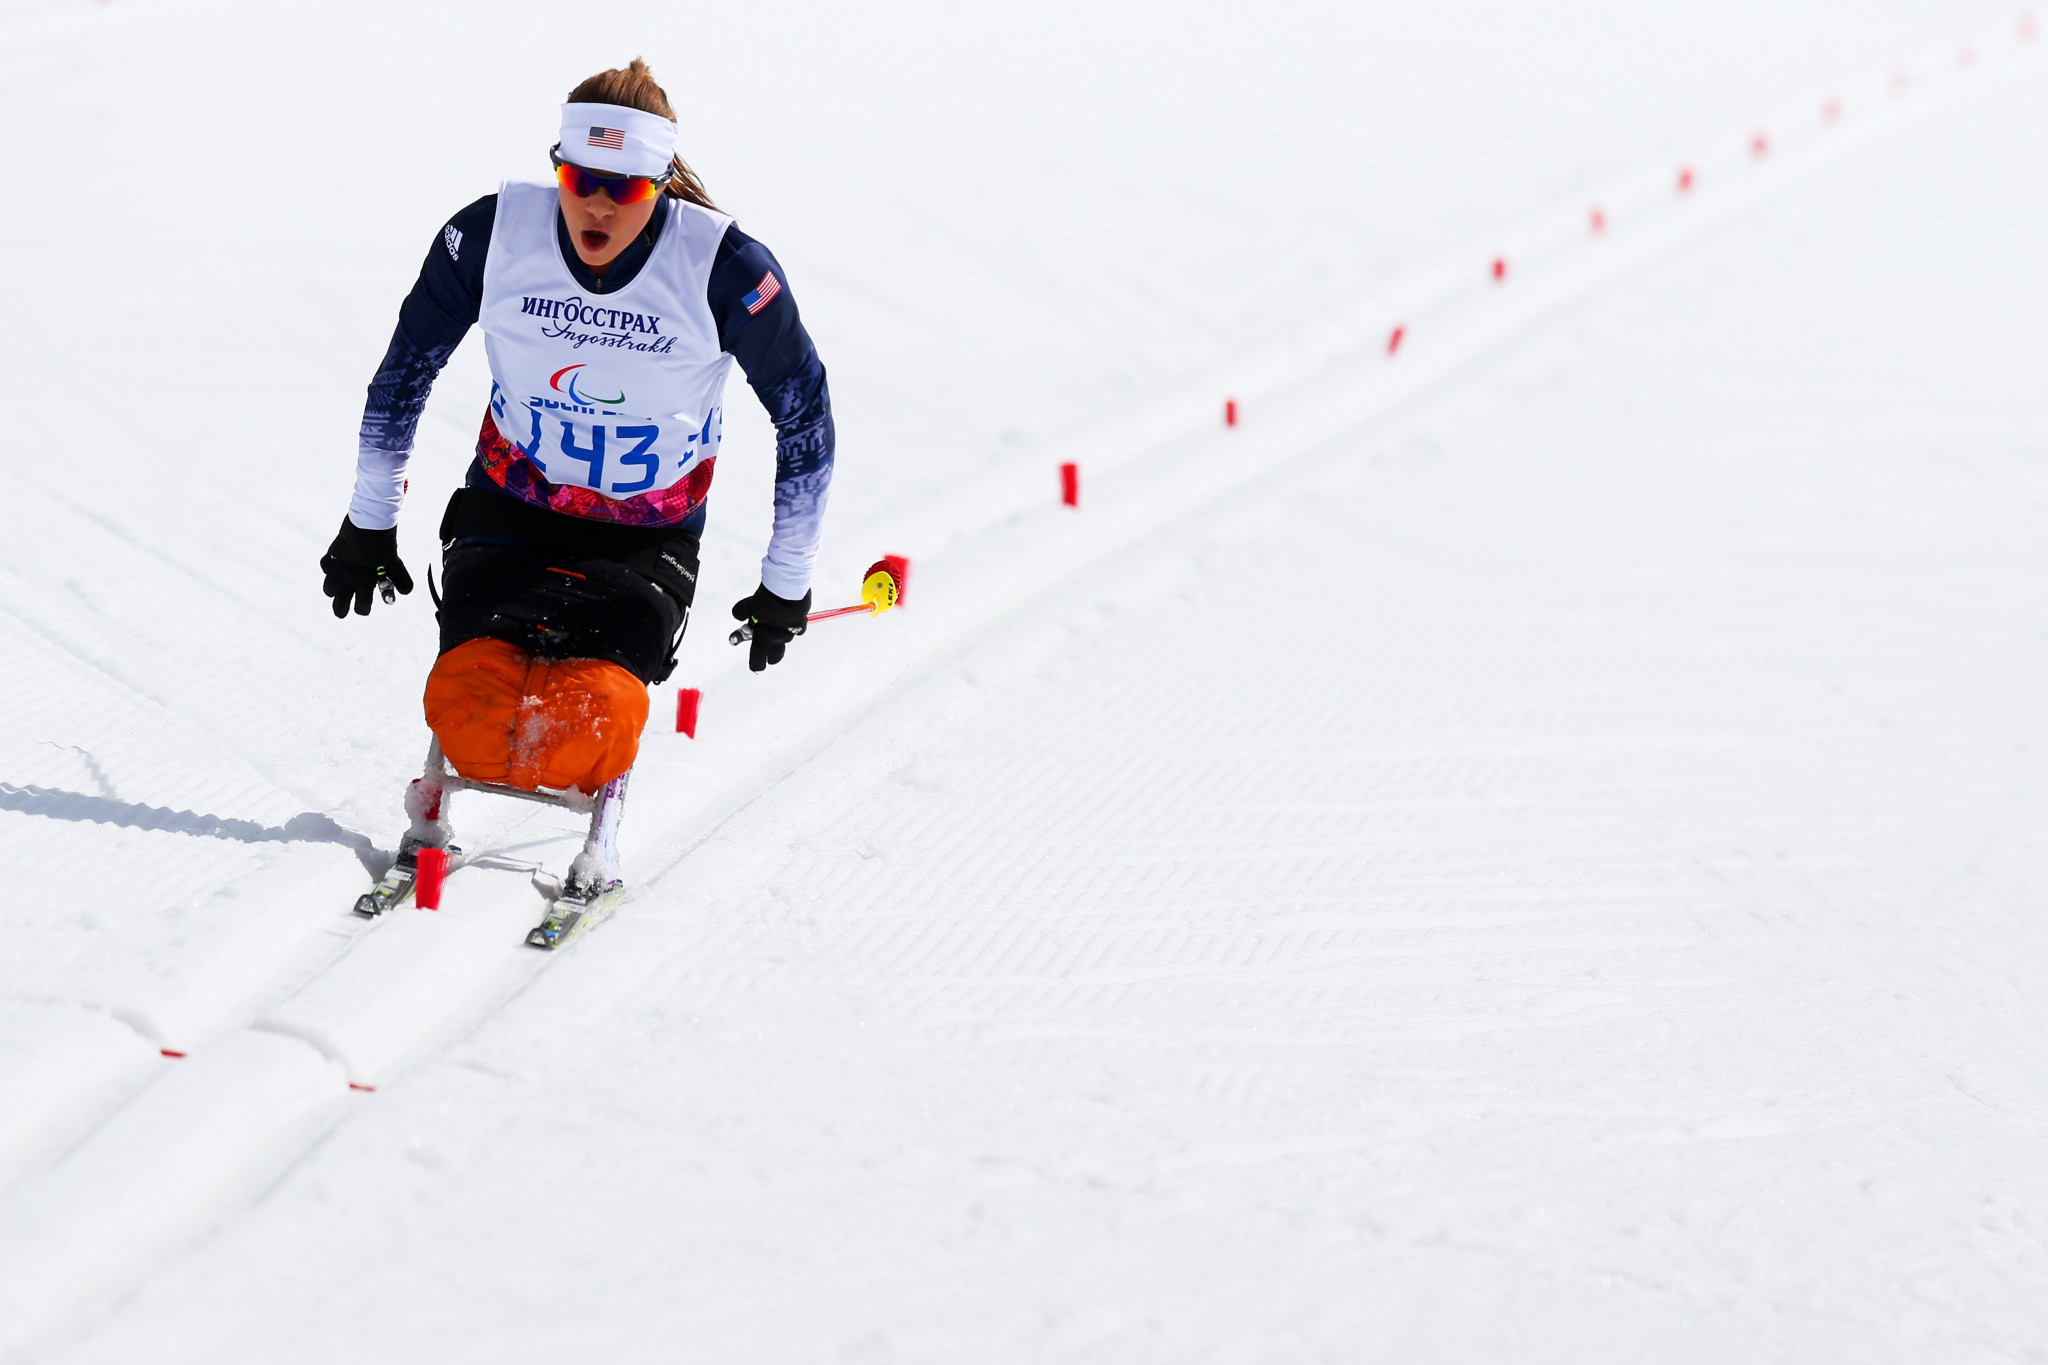 Voting open for February's IPC Athlete of the Month